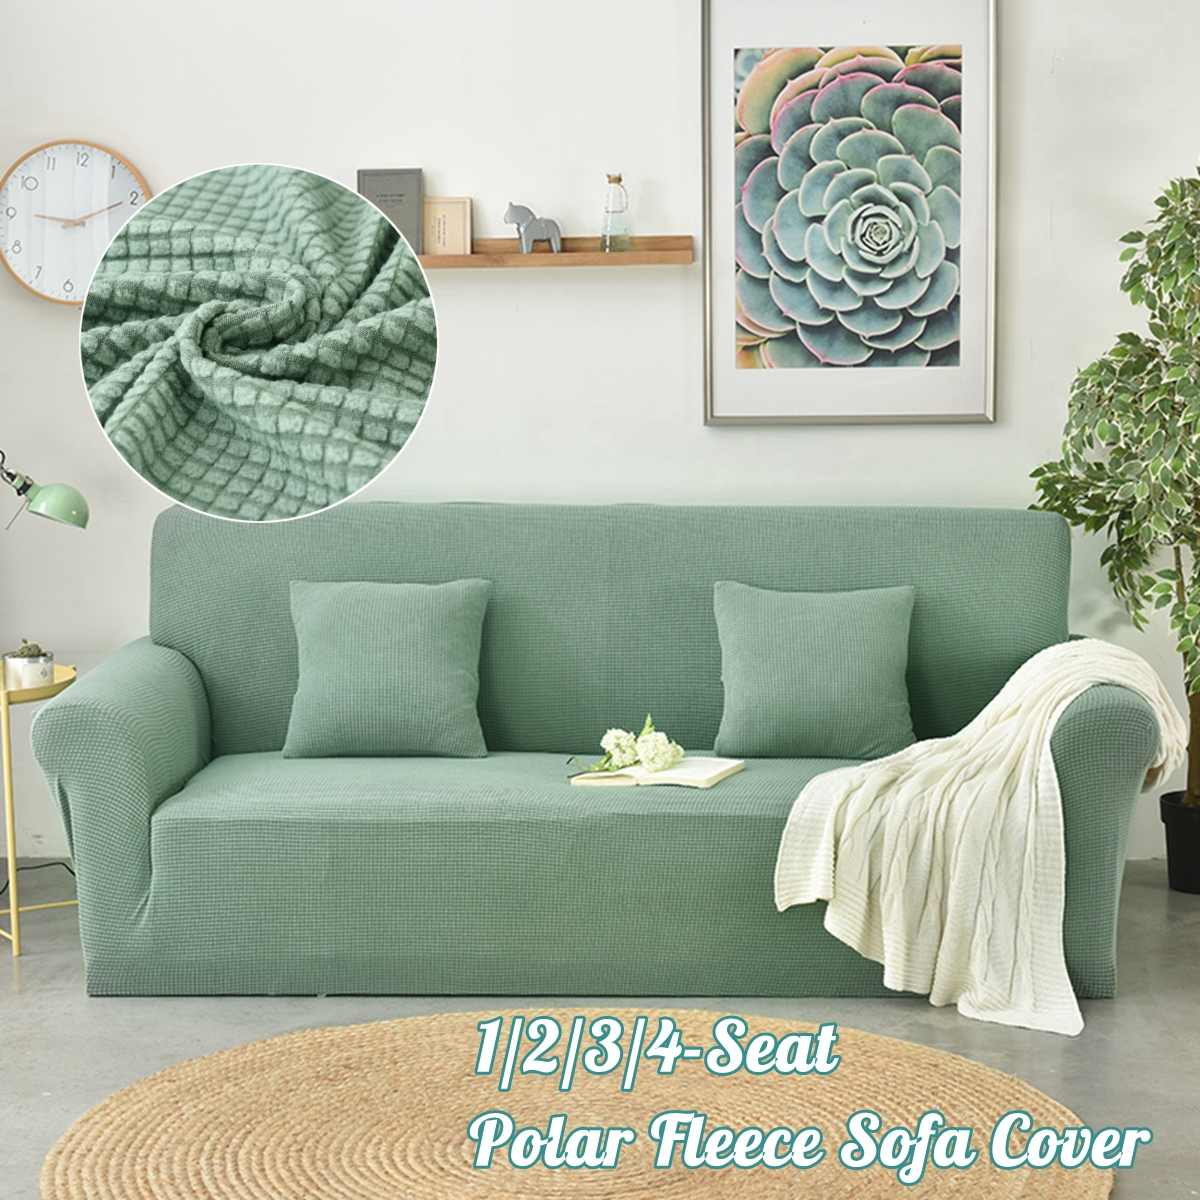 Free Shipping New 8040 Scotch Sofa Cover 41 x 131 Inch